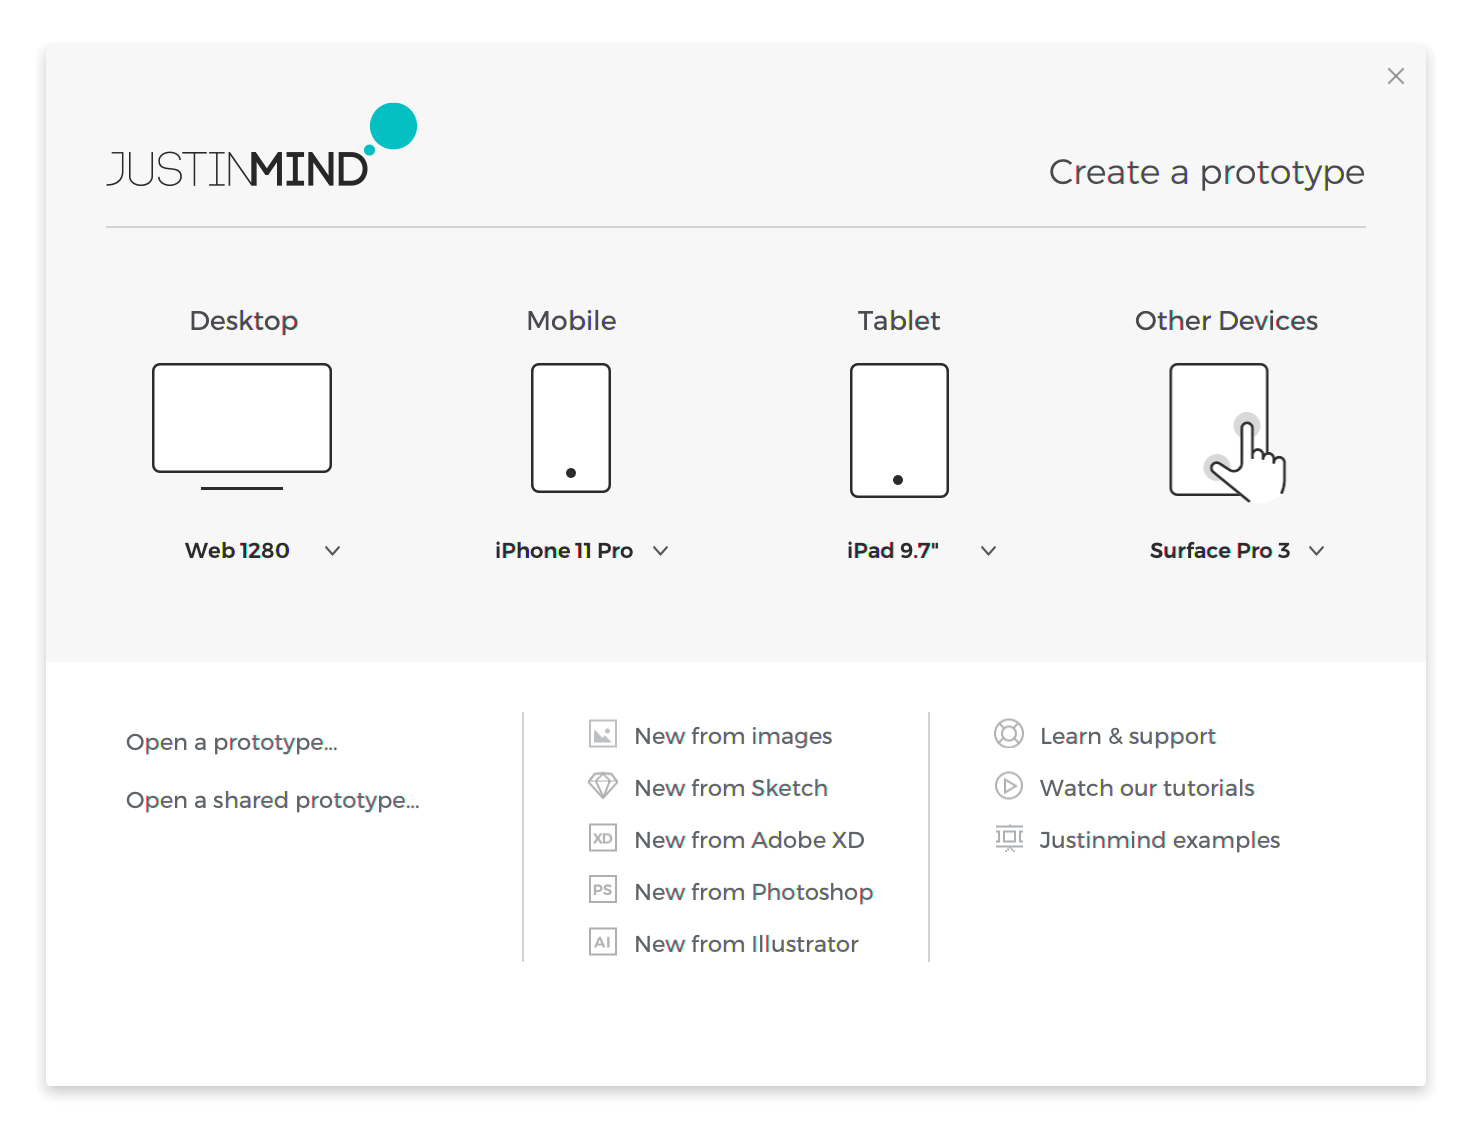 Justinmind welcome window. Choose from several devices to start prototyping